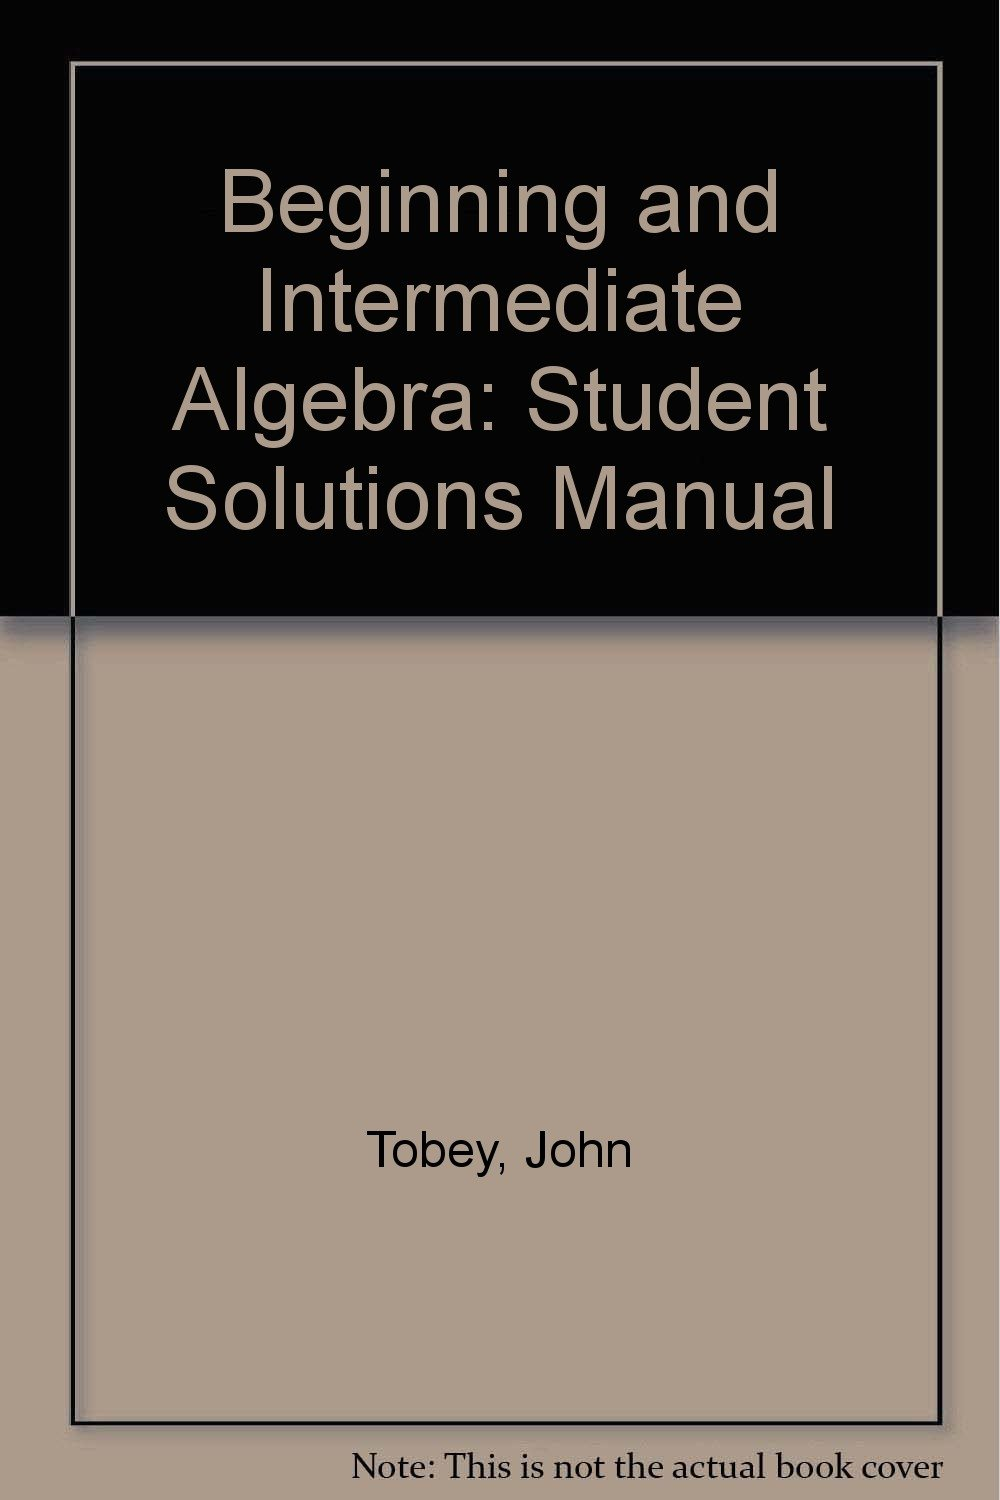 Beginning and Intermediate Algebra: Student Solutions Manual: John Tobey:  9780131857919: Amazon.com: Books